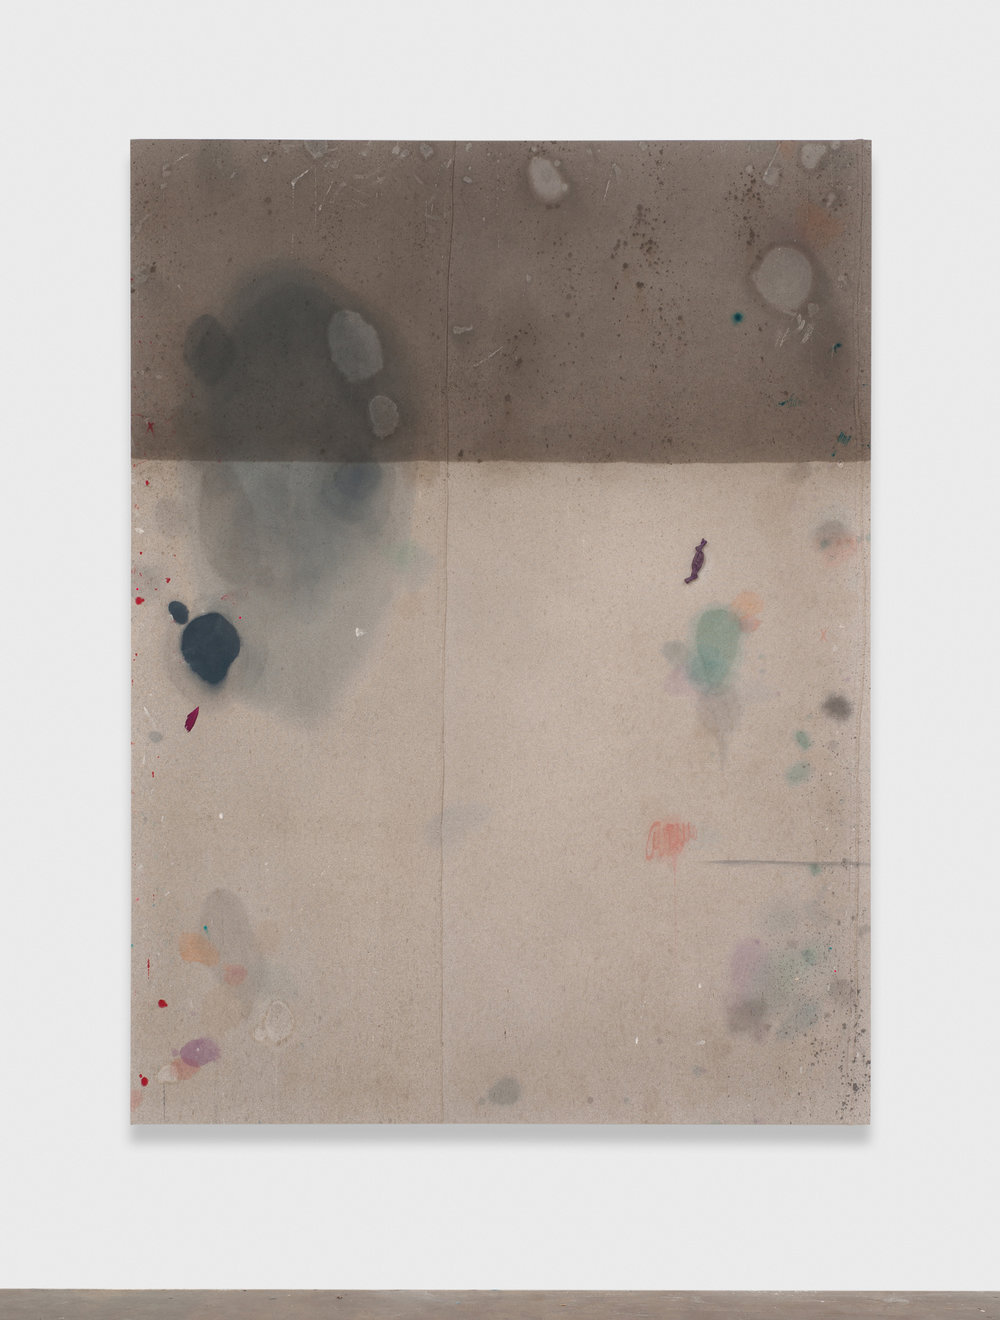 Amanda Ross-Ho  Untitled Dropcloth Painting (PURPLE CANDY)  2014 Canvas dropcloth, acrylic paint, latex paint, graphite, fabric dye, Purple Catnip Candy, feather fragment 84h x 63w in ARH097